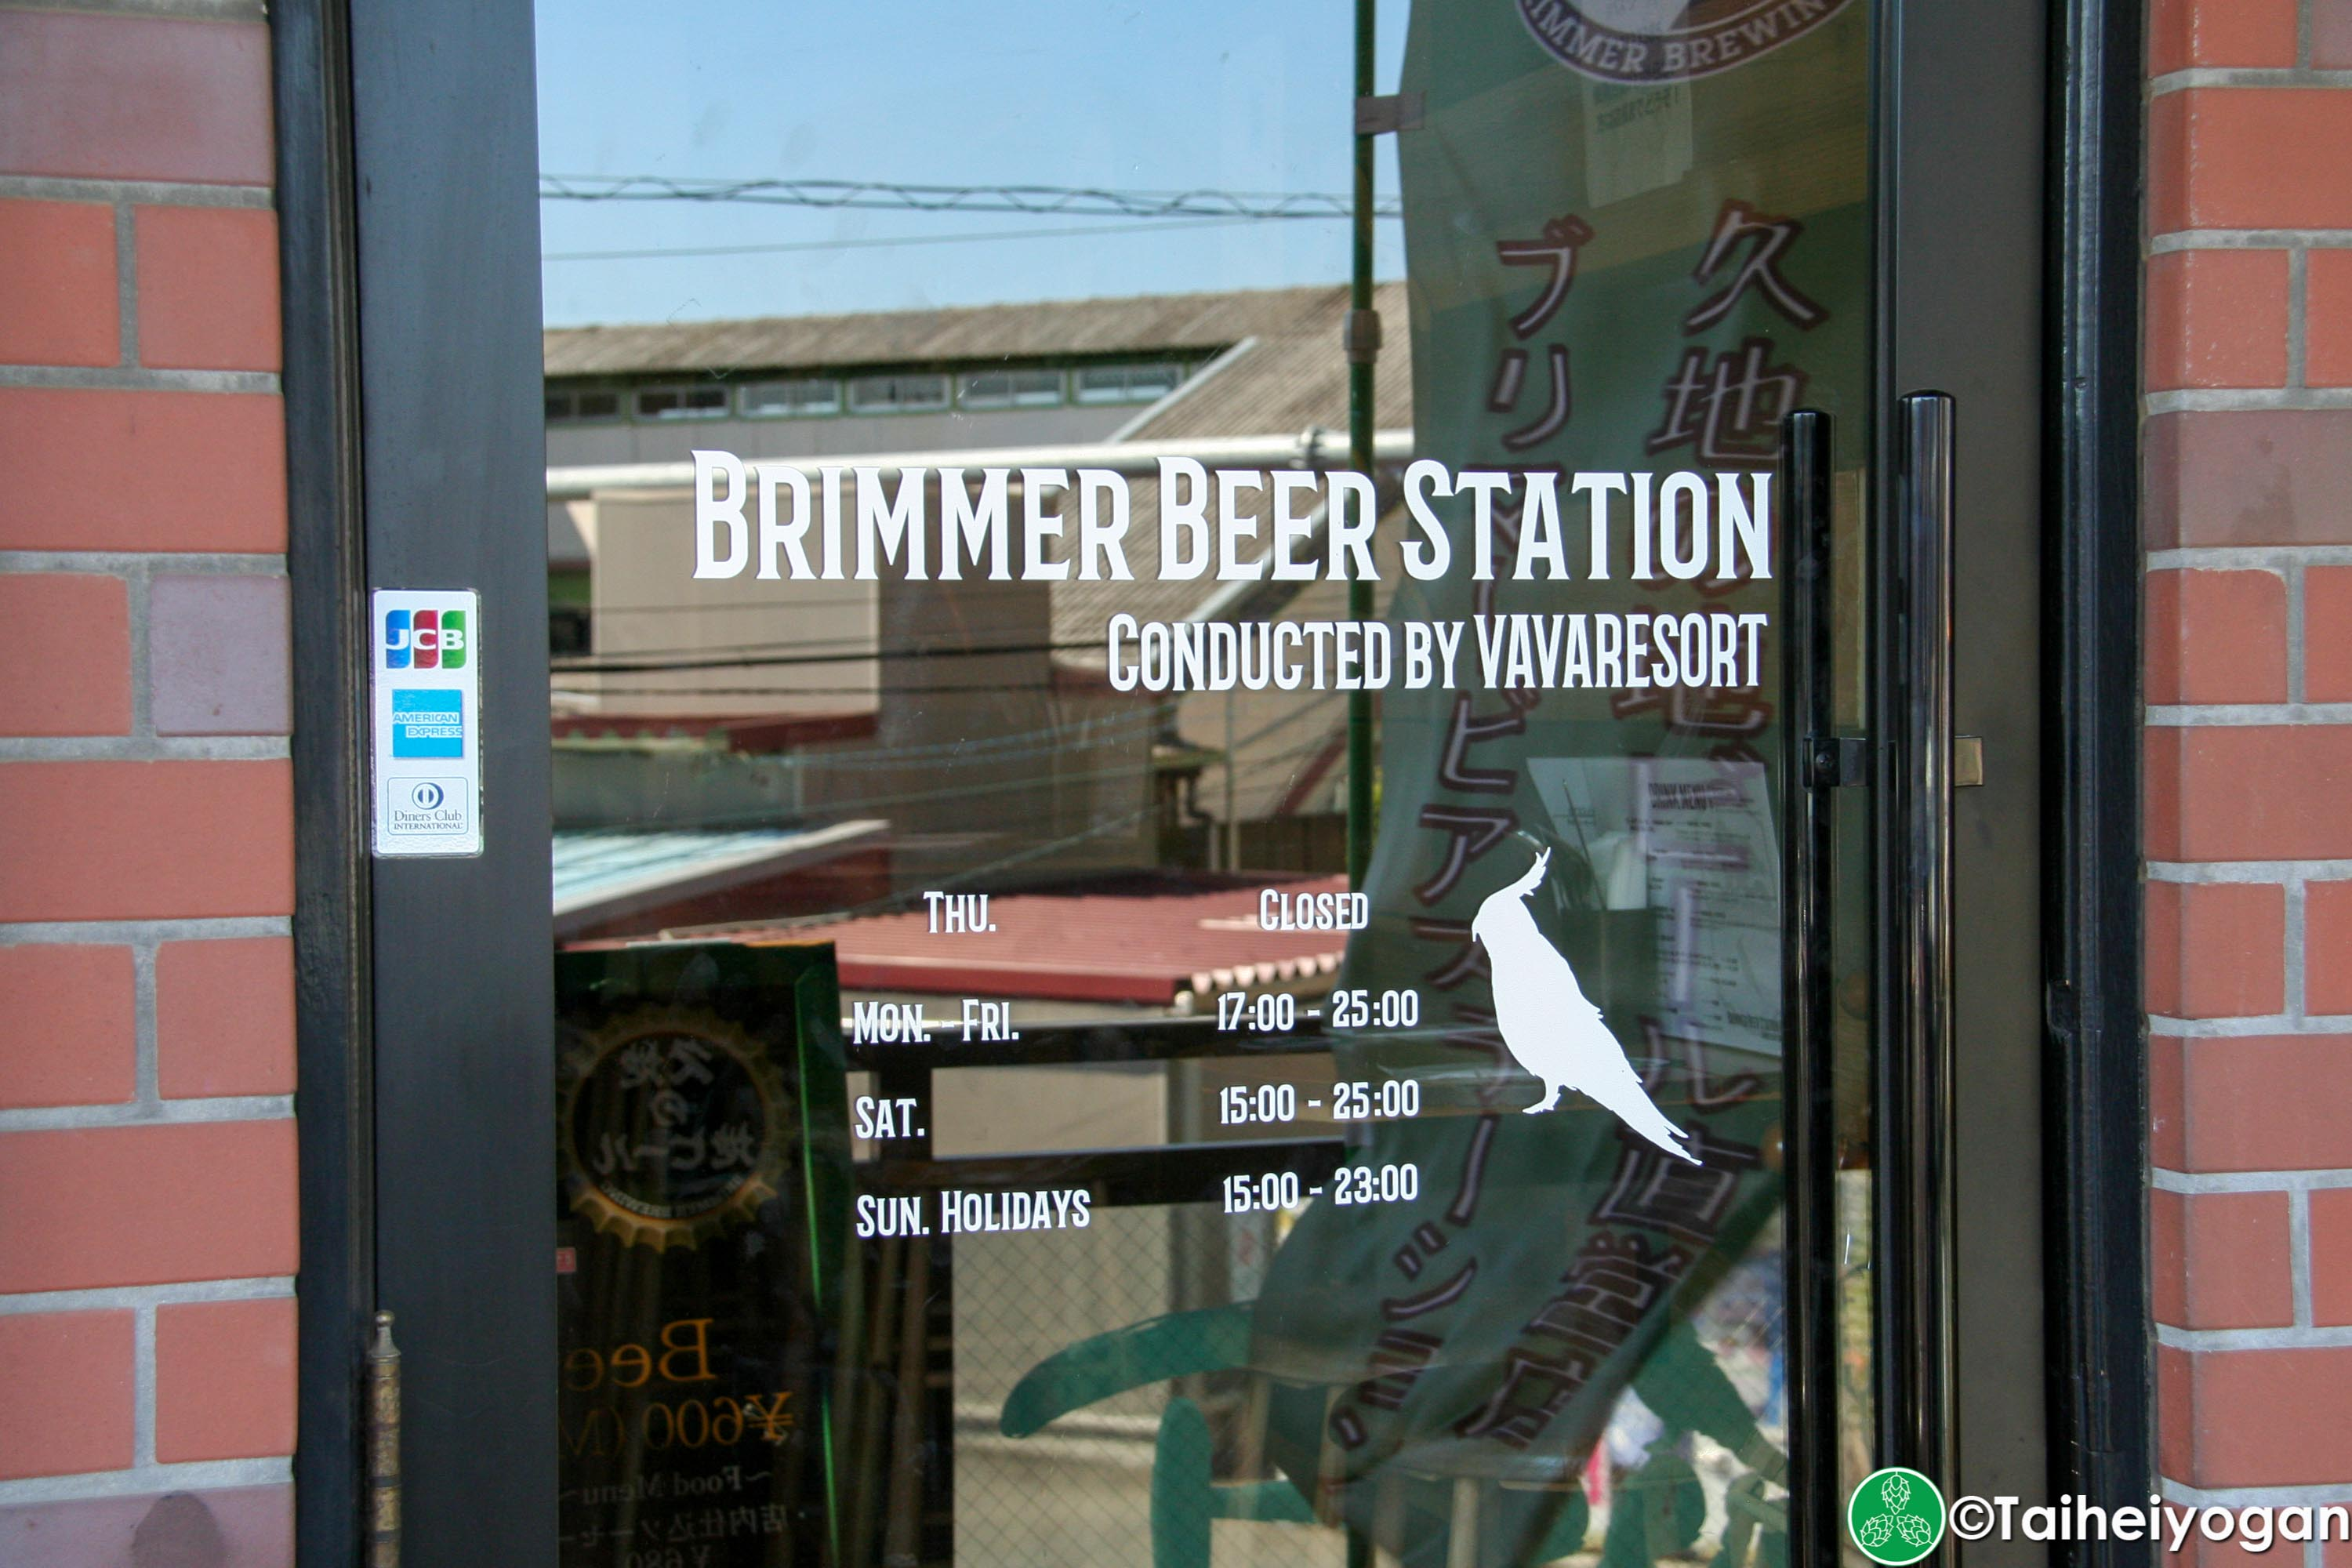 Brimmer Beer Station- Interior - Entrance